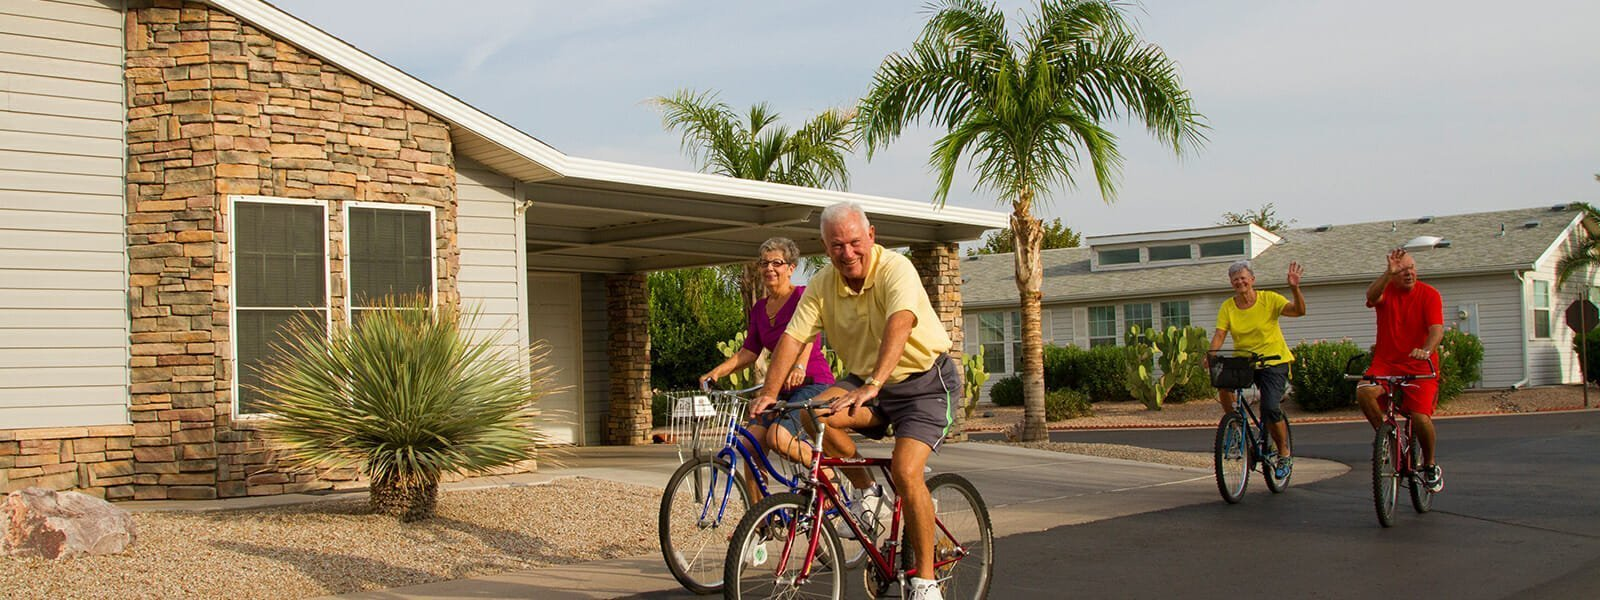 Las Palmas | Active 55 Community | Arizona Thesman Community | AZ